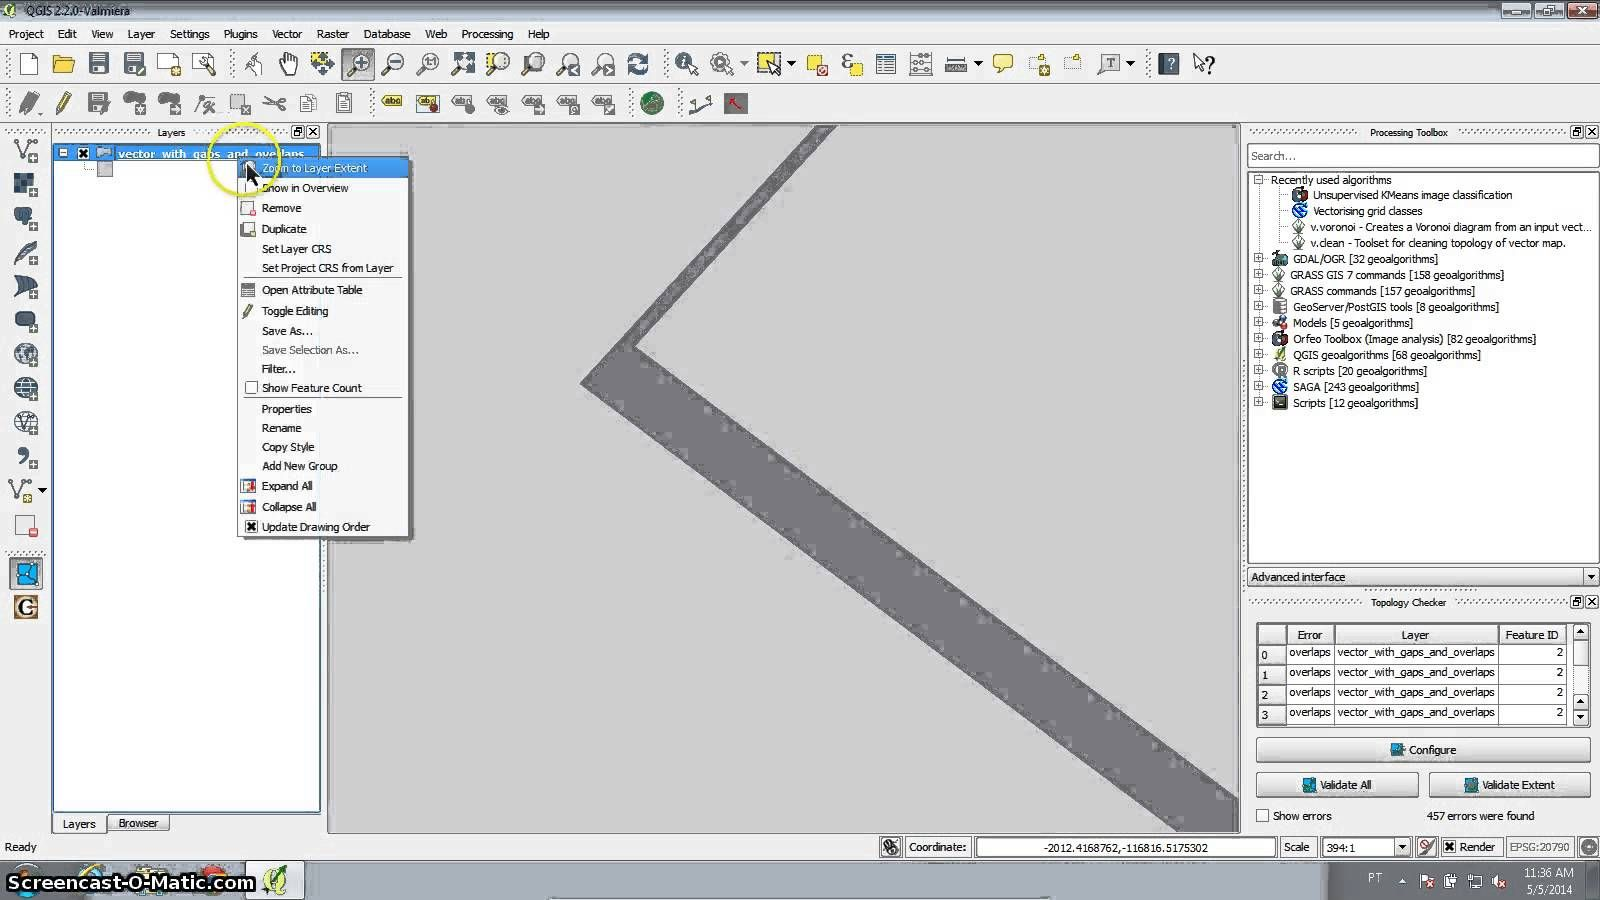 QGIS tutrial : remove overlapping areas and fill gaps with the Processing toolbox